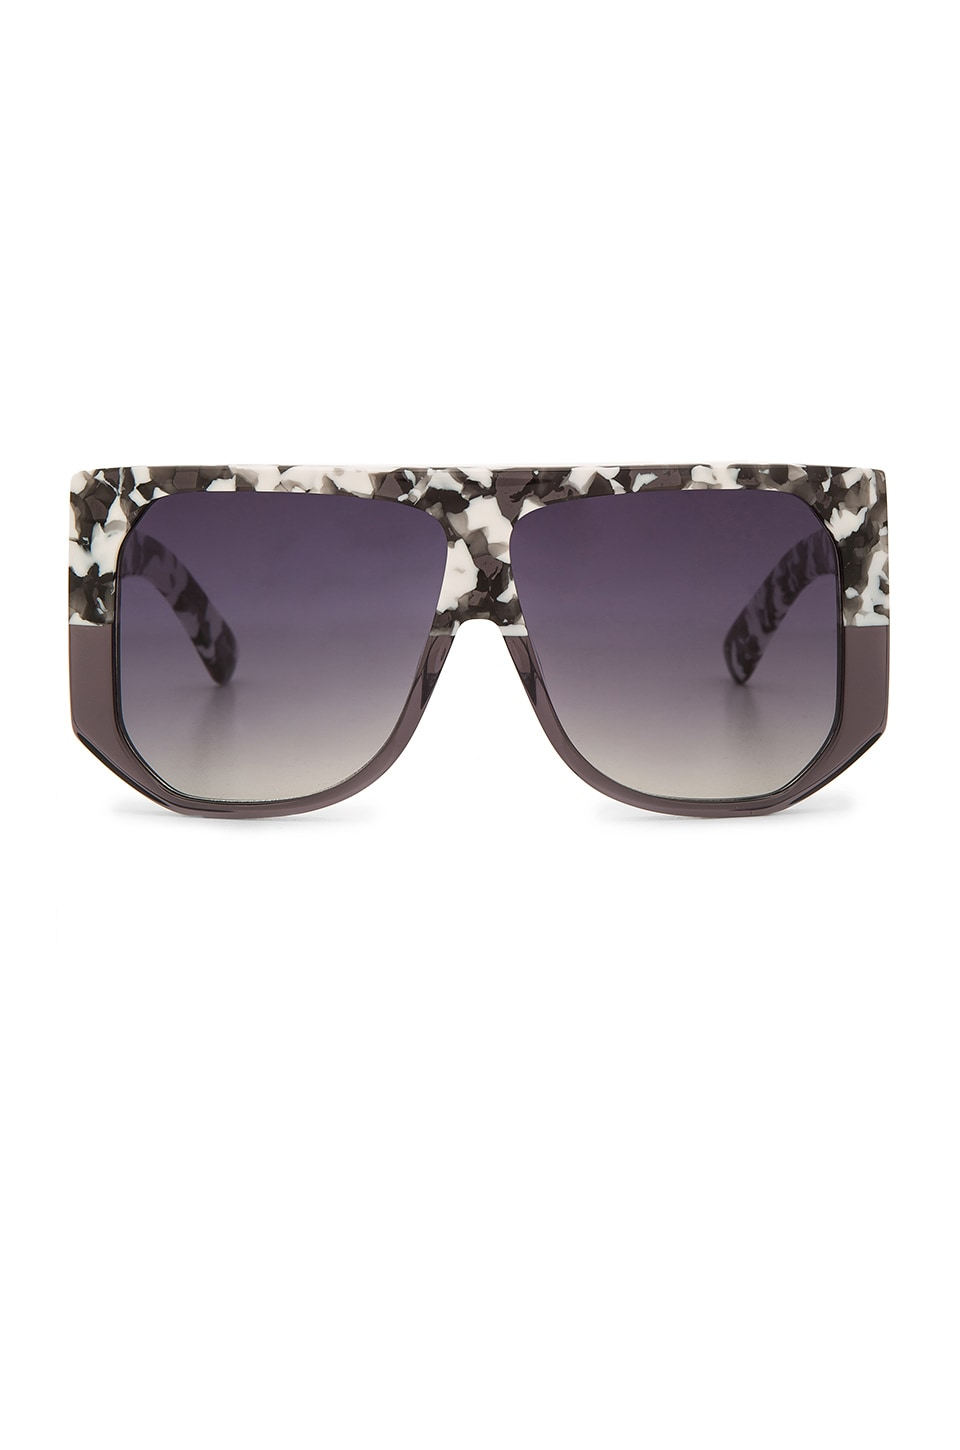 Hadid Eyewear Frequent Flyer in White Tortoise & Grey Crystal